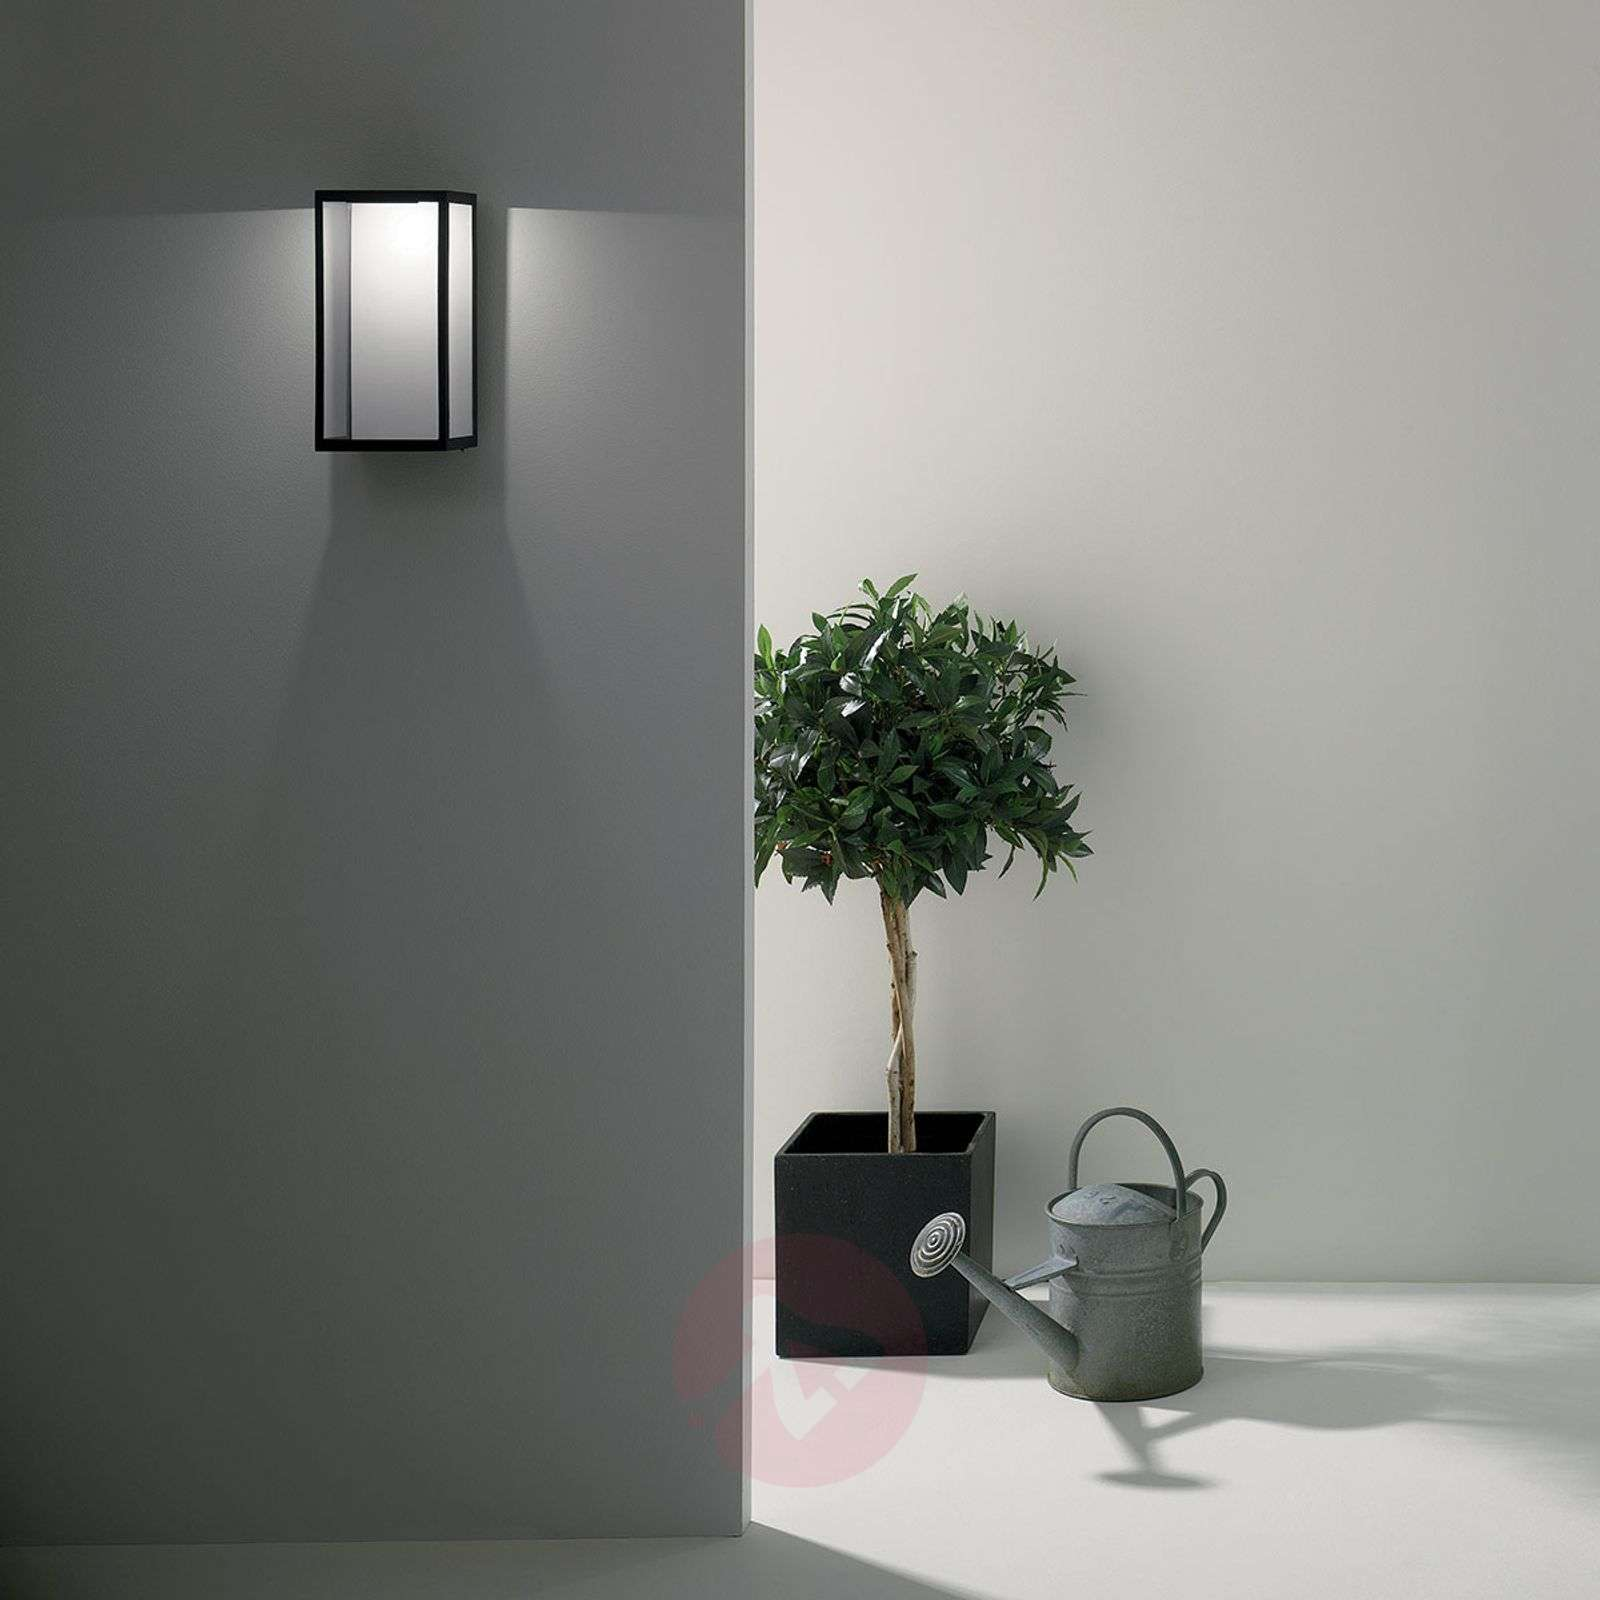 LED outdoor wall light Puzzle in black-1020528-02